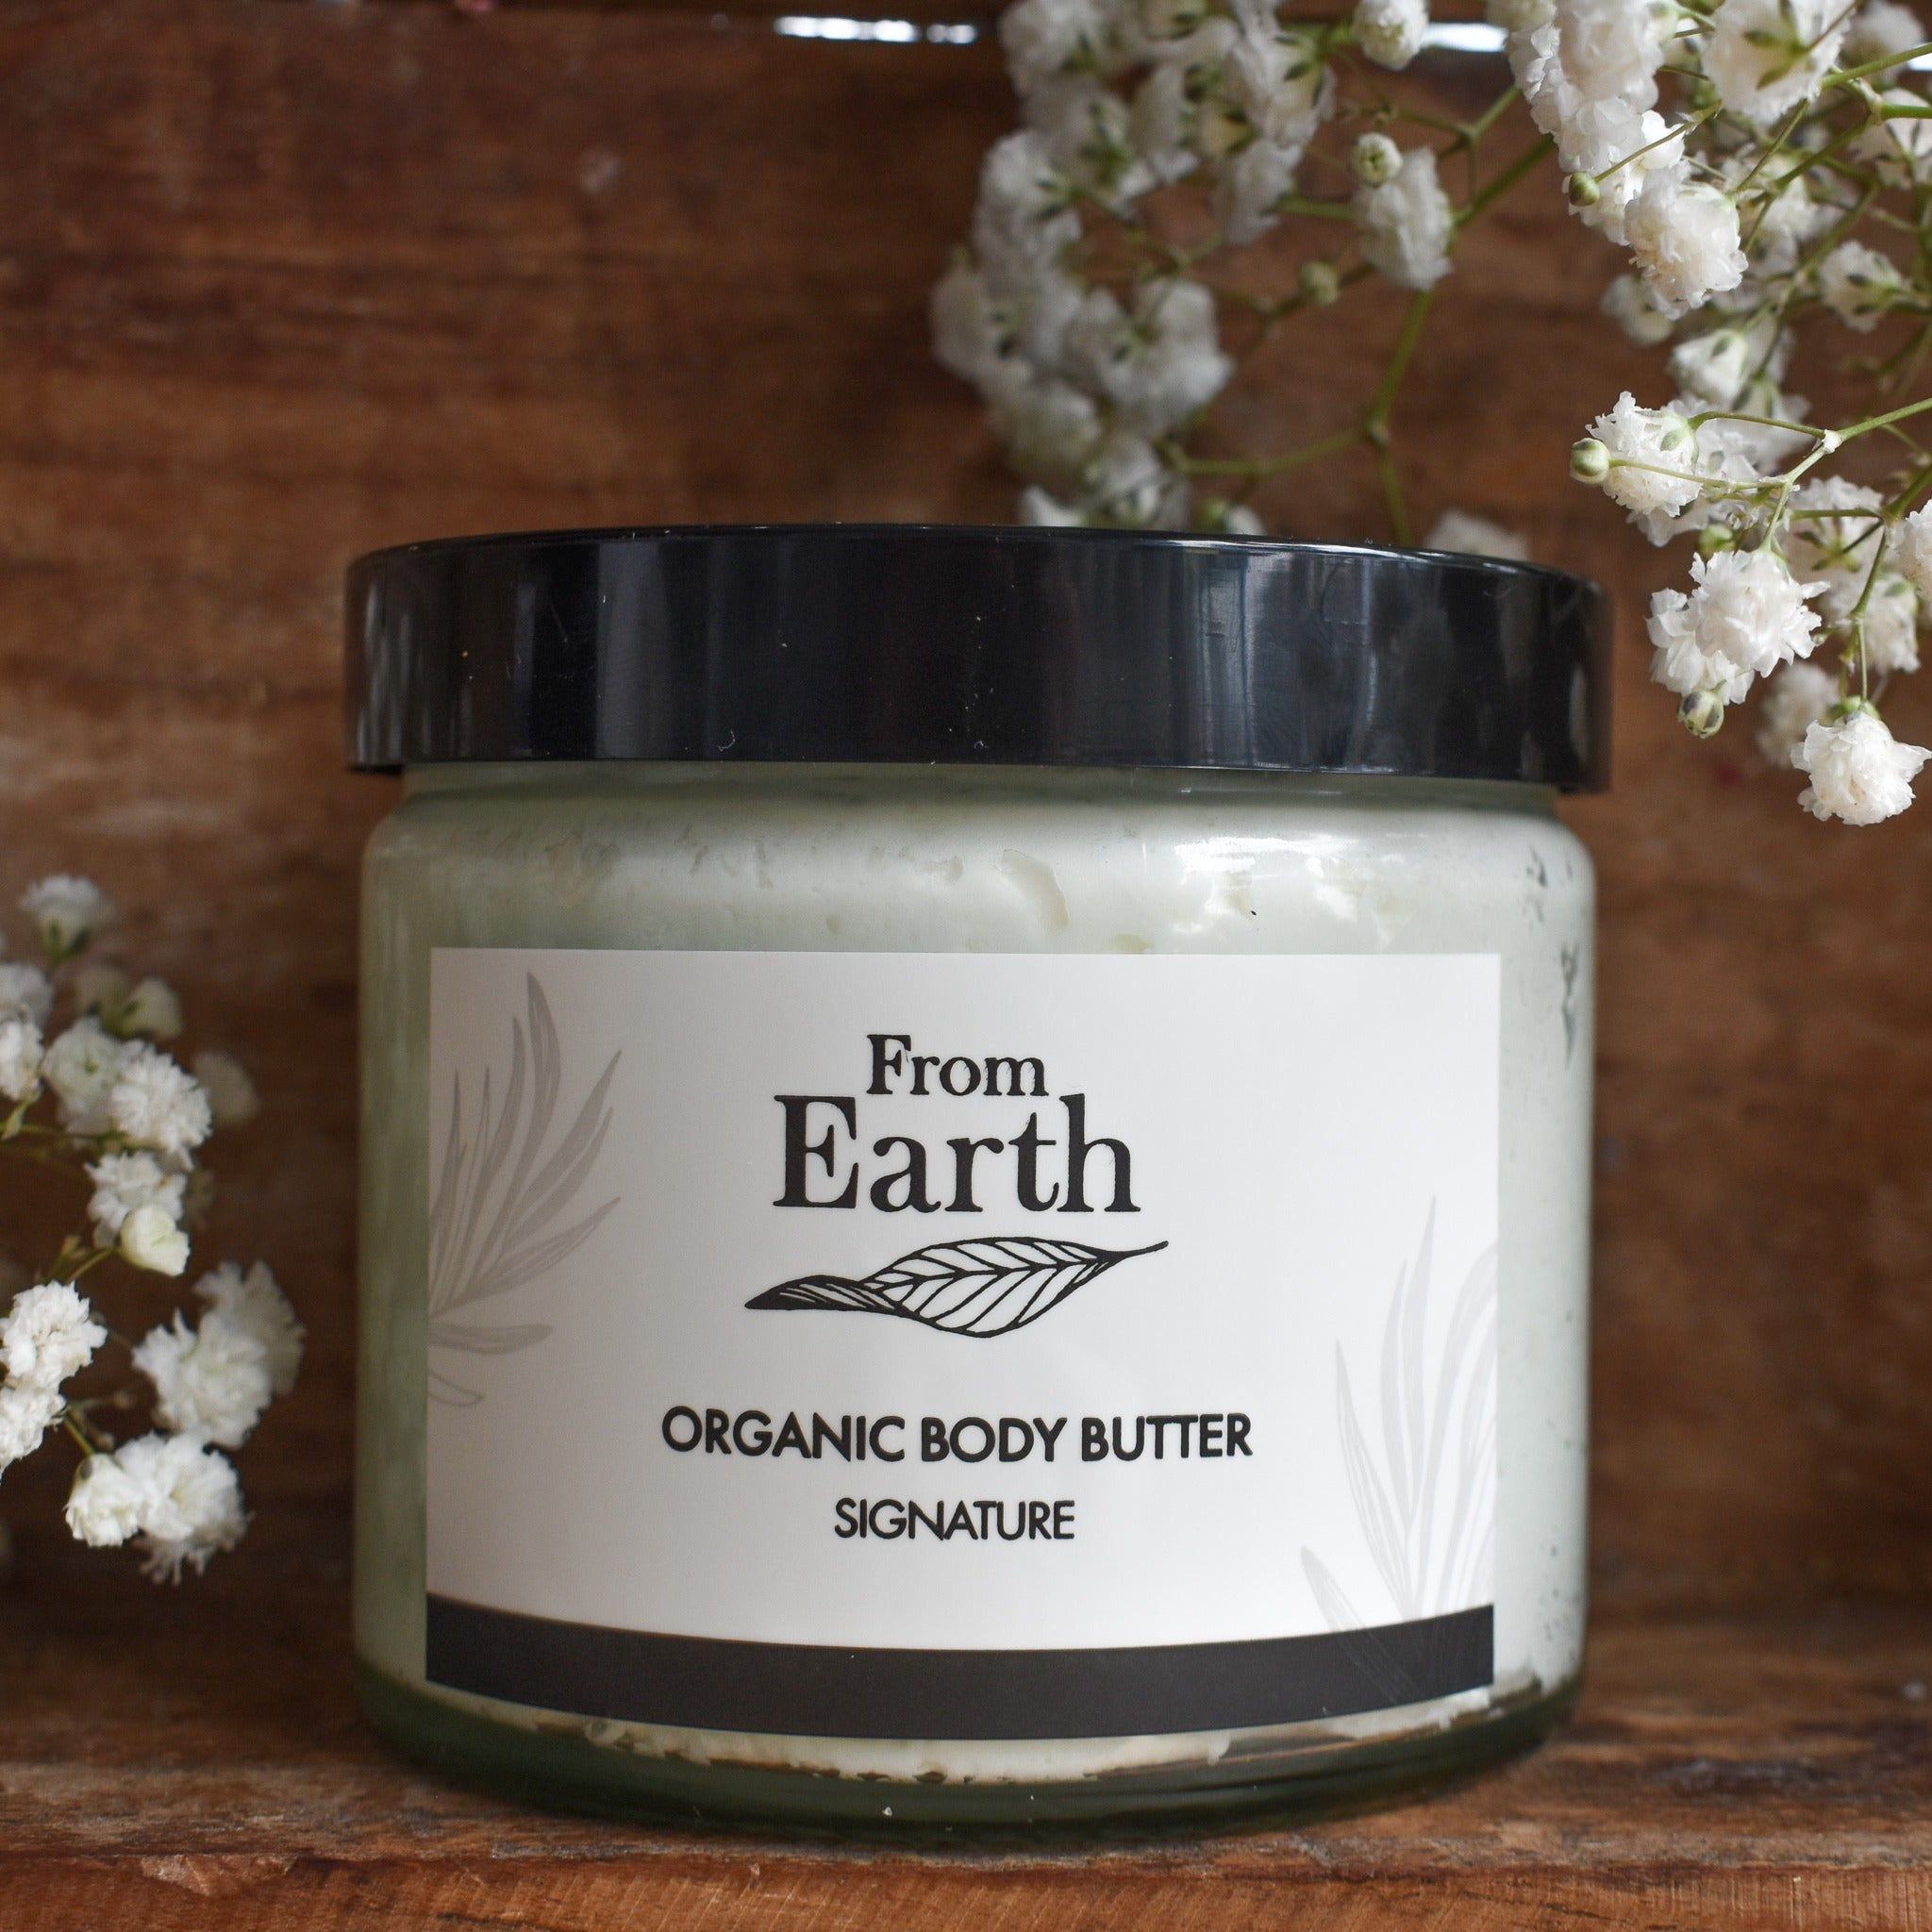 From Earth | Organic Body Butter Signature